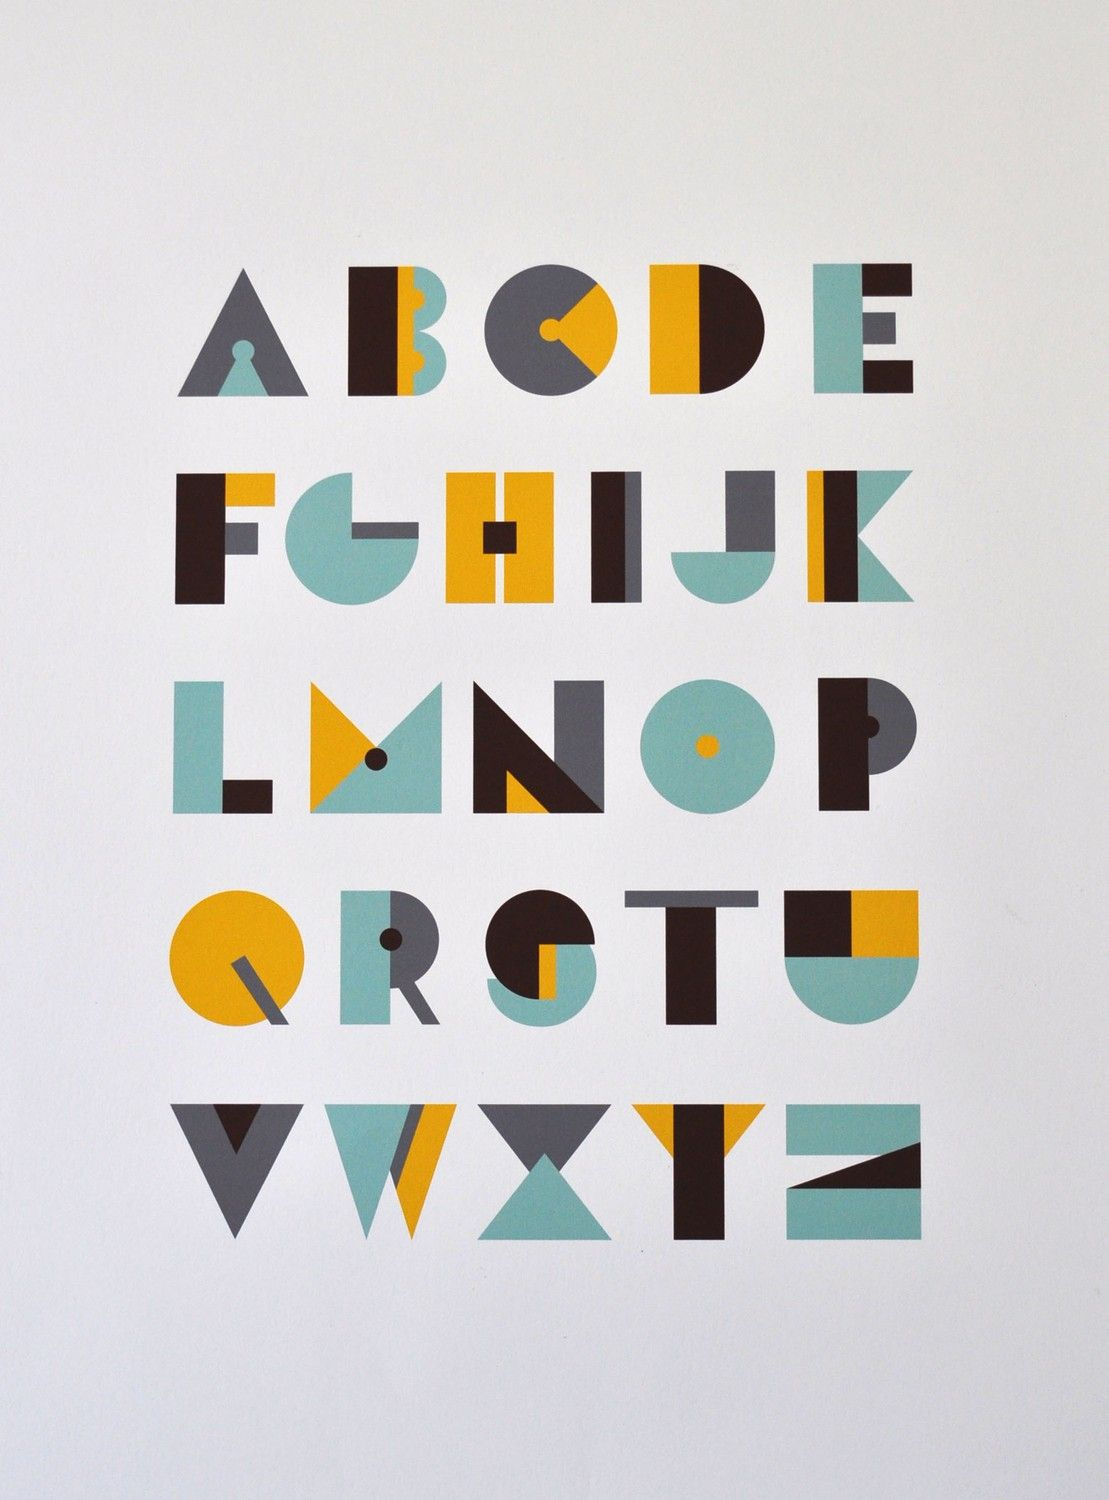 Pin by jackie hagan on Typographie Typography alphabet